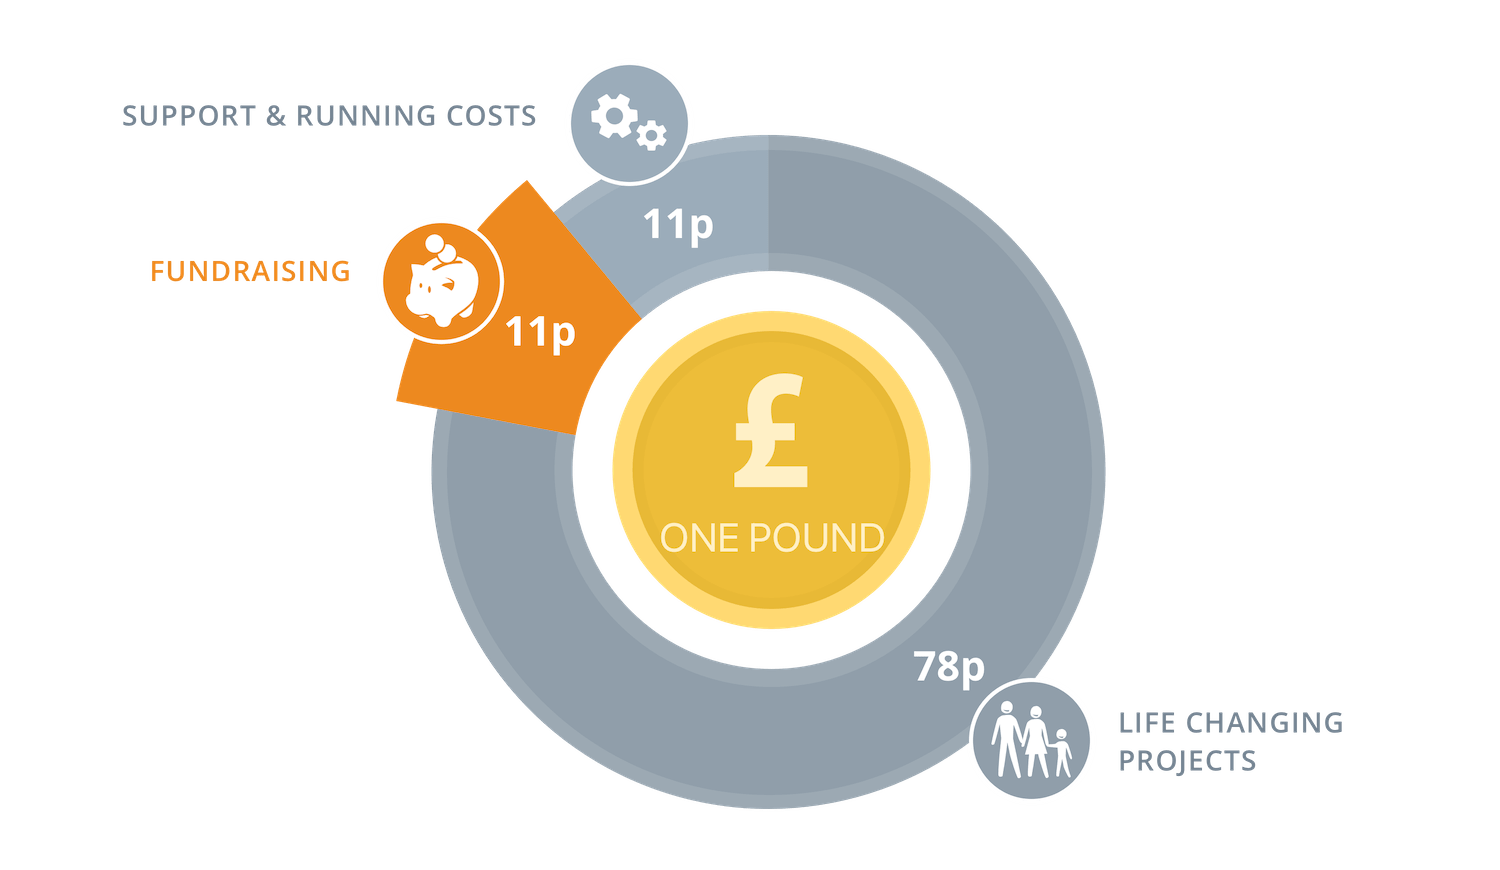 TEARFUND'S EXPENDITURE BREAKDOWN